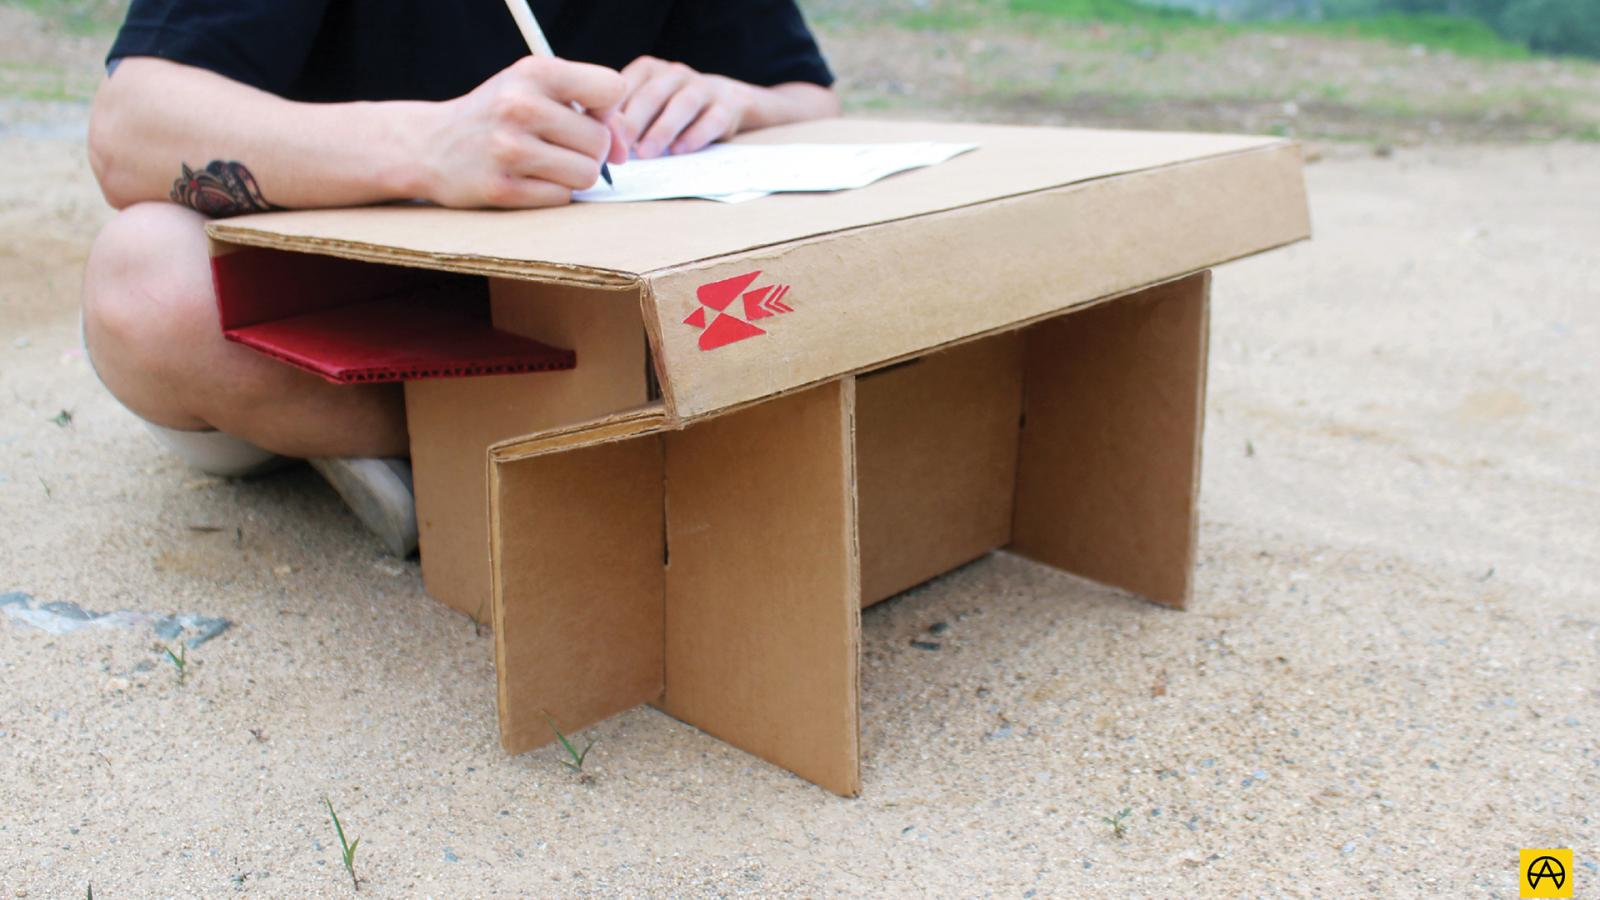 Industrial Design: Foldable Desk made of Cardboard Paper